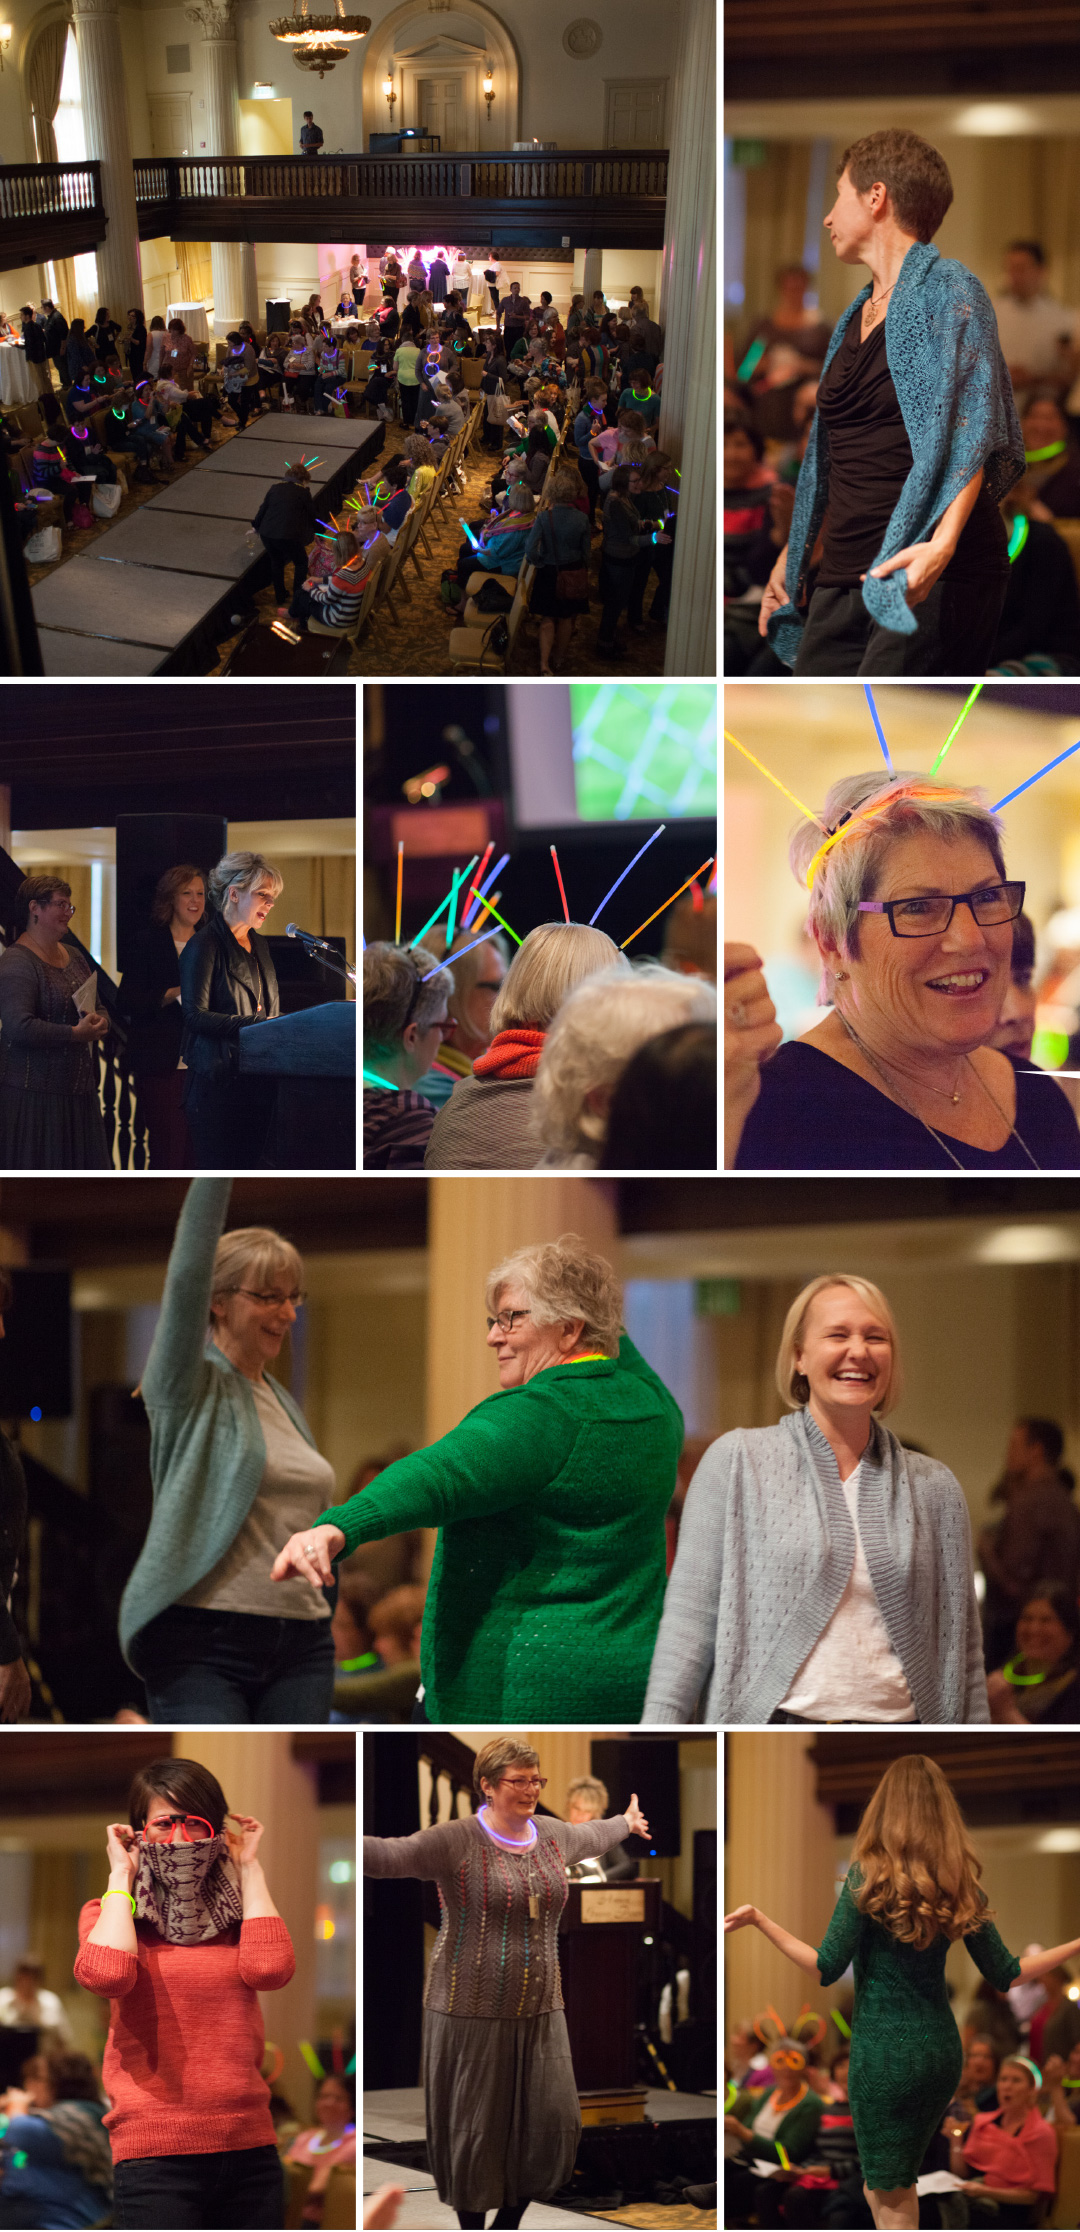 PK-Shindig2015-PhotoCollage-WIDE-2